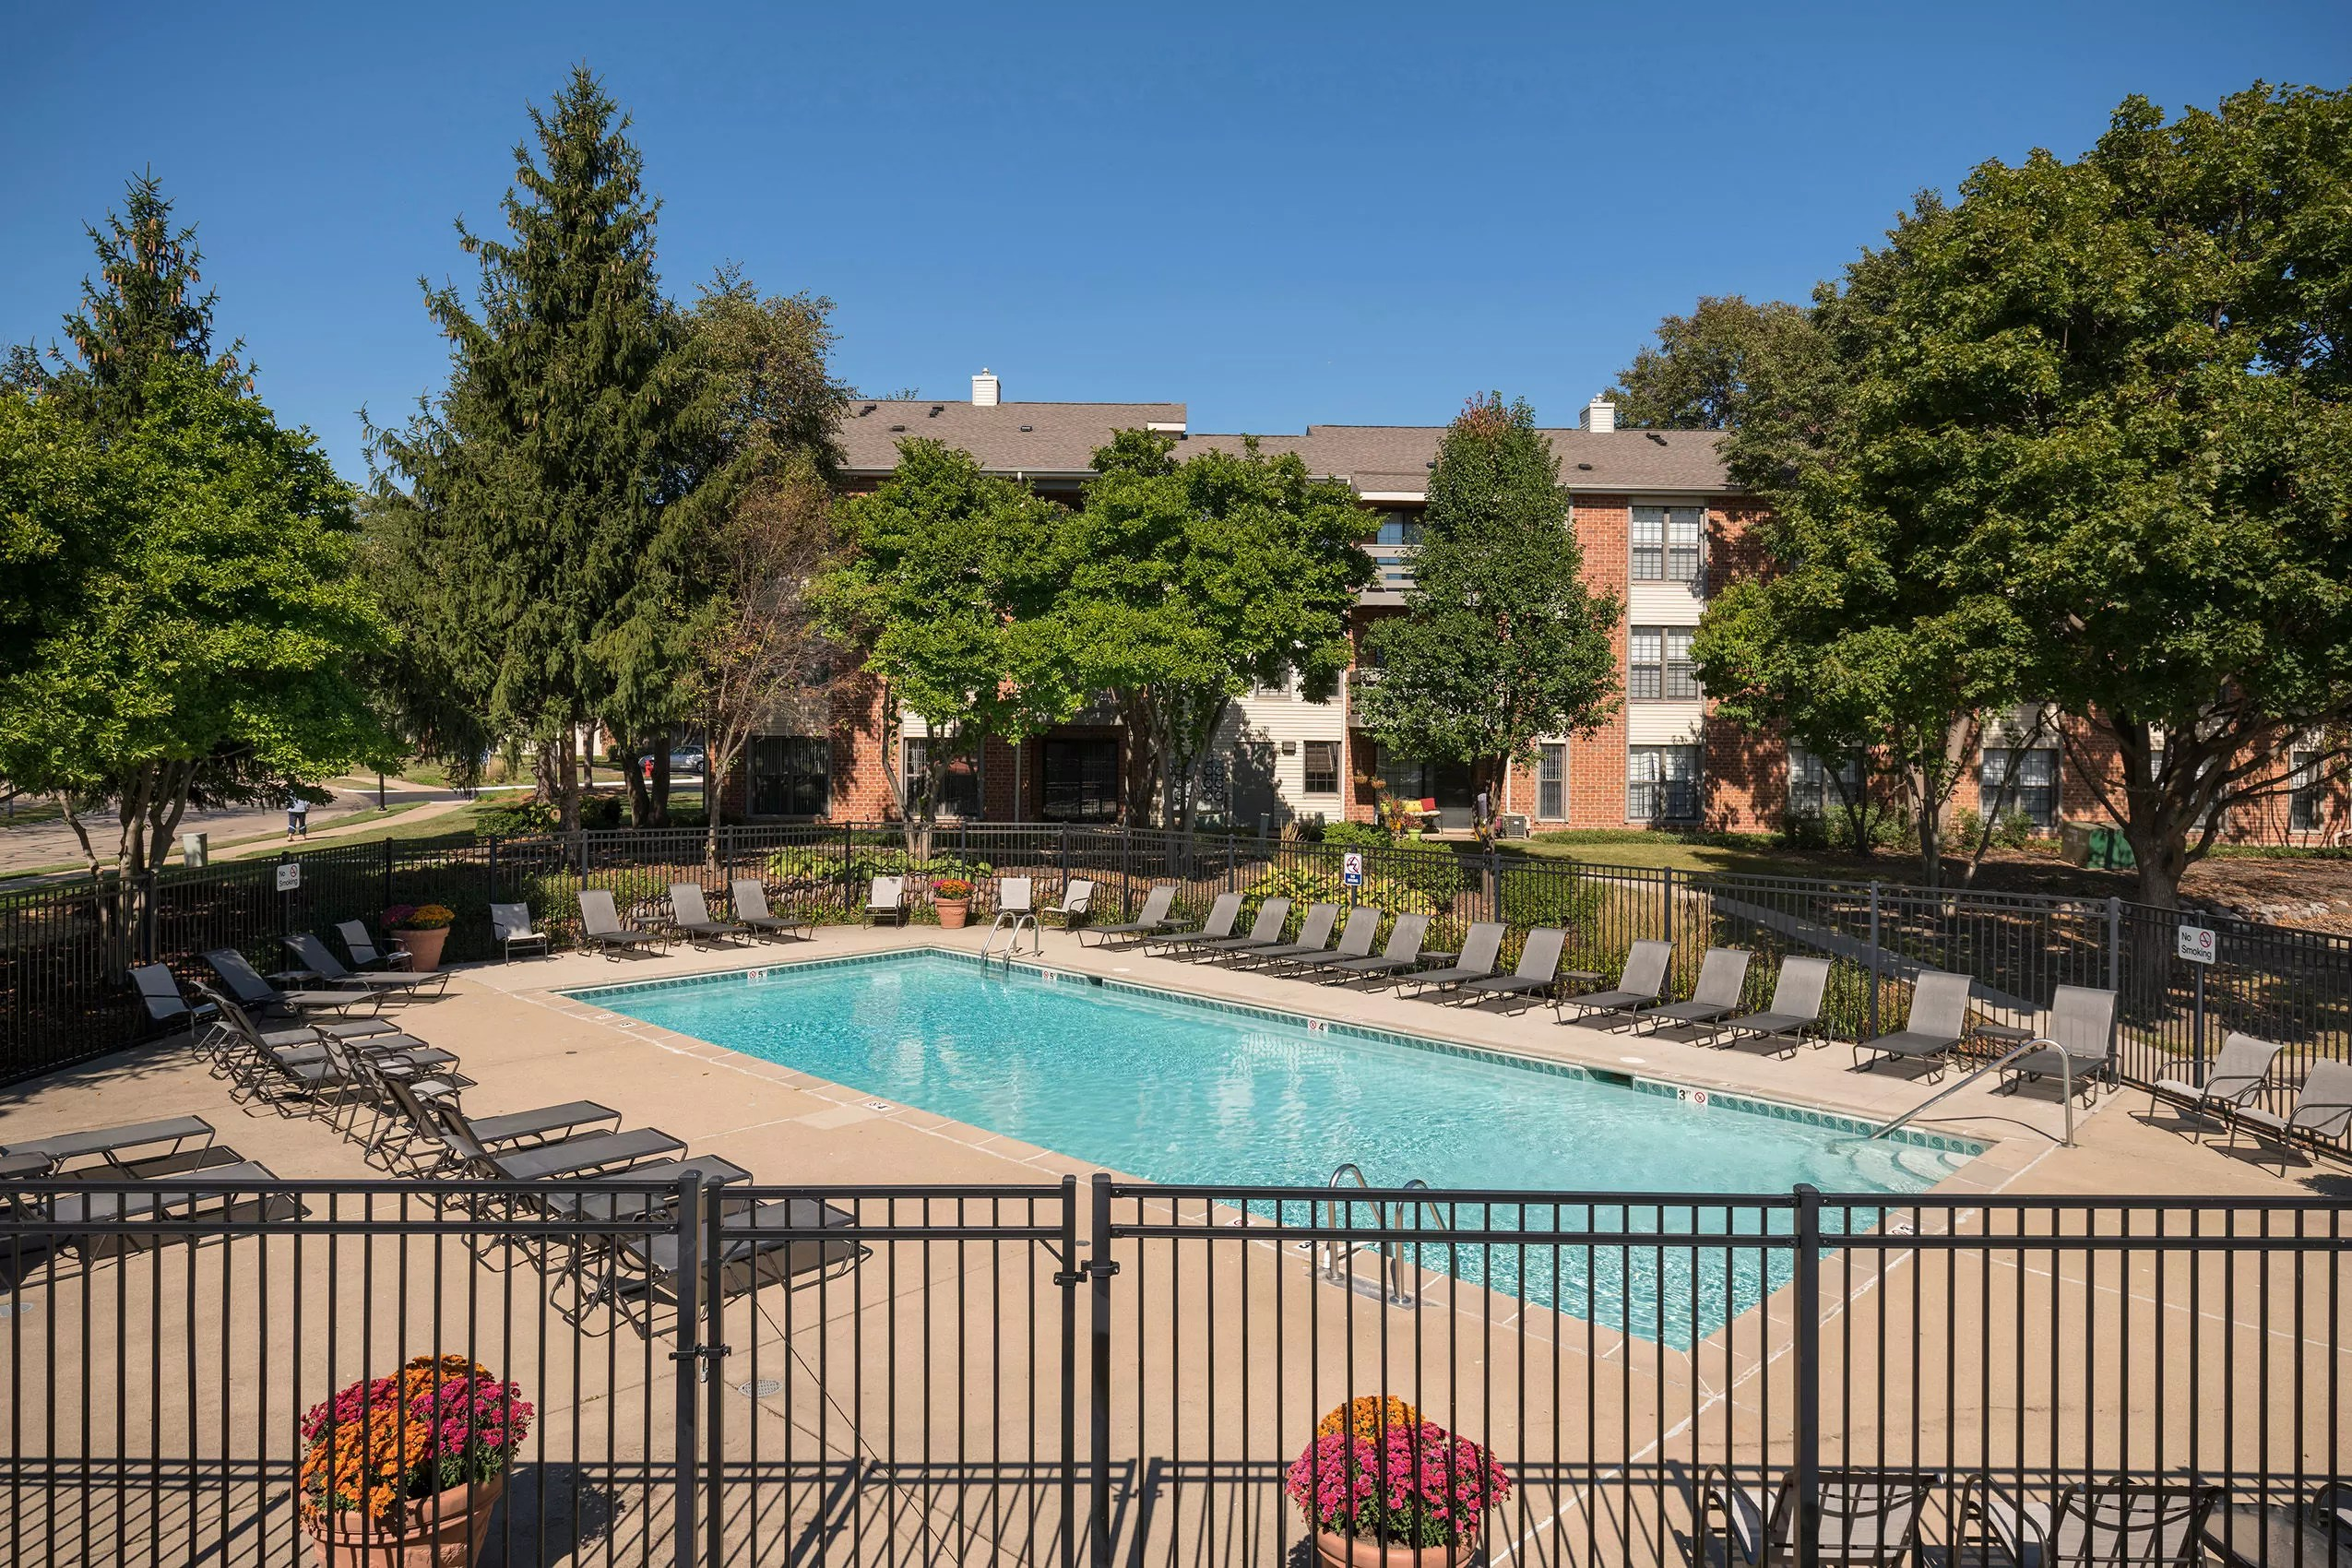 Rand Rd Palatine IL Apartments for Rent  Clover Ridge